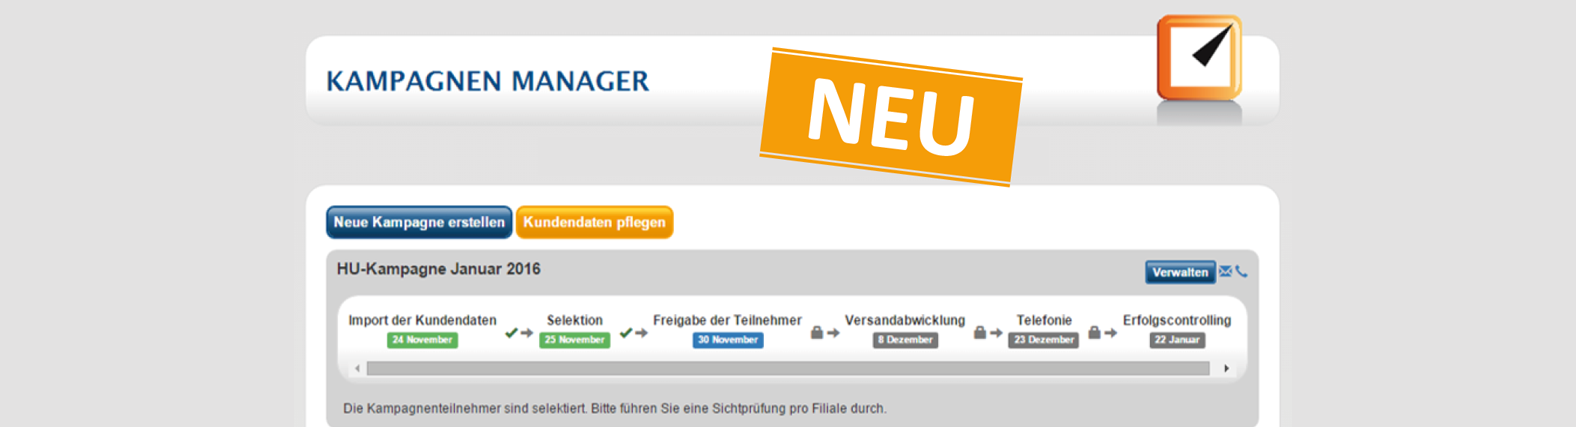 VEACT Kampagnen-Manager 2.0